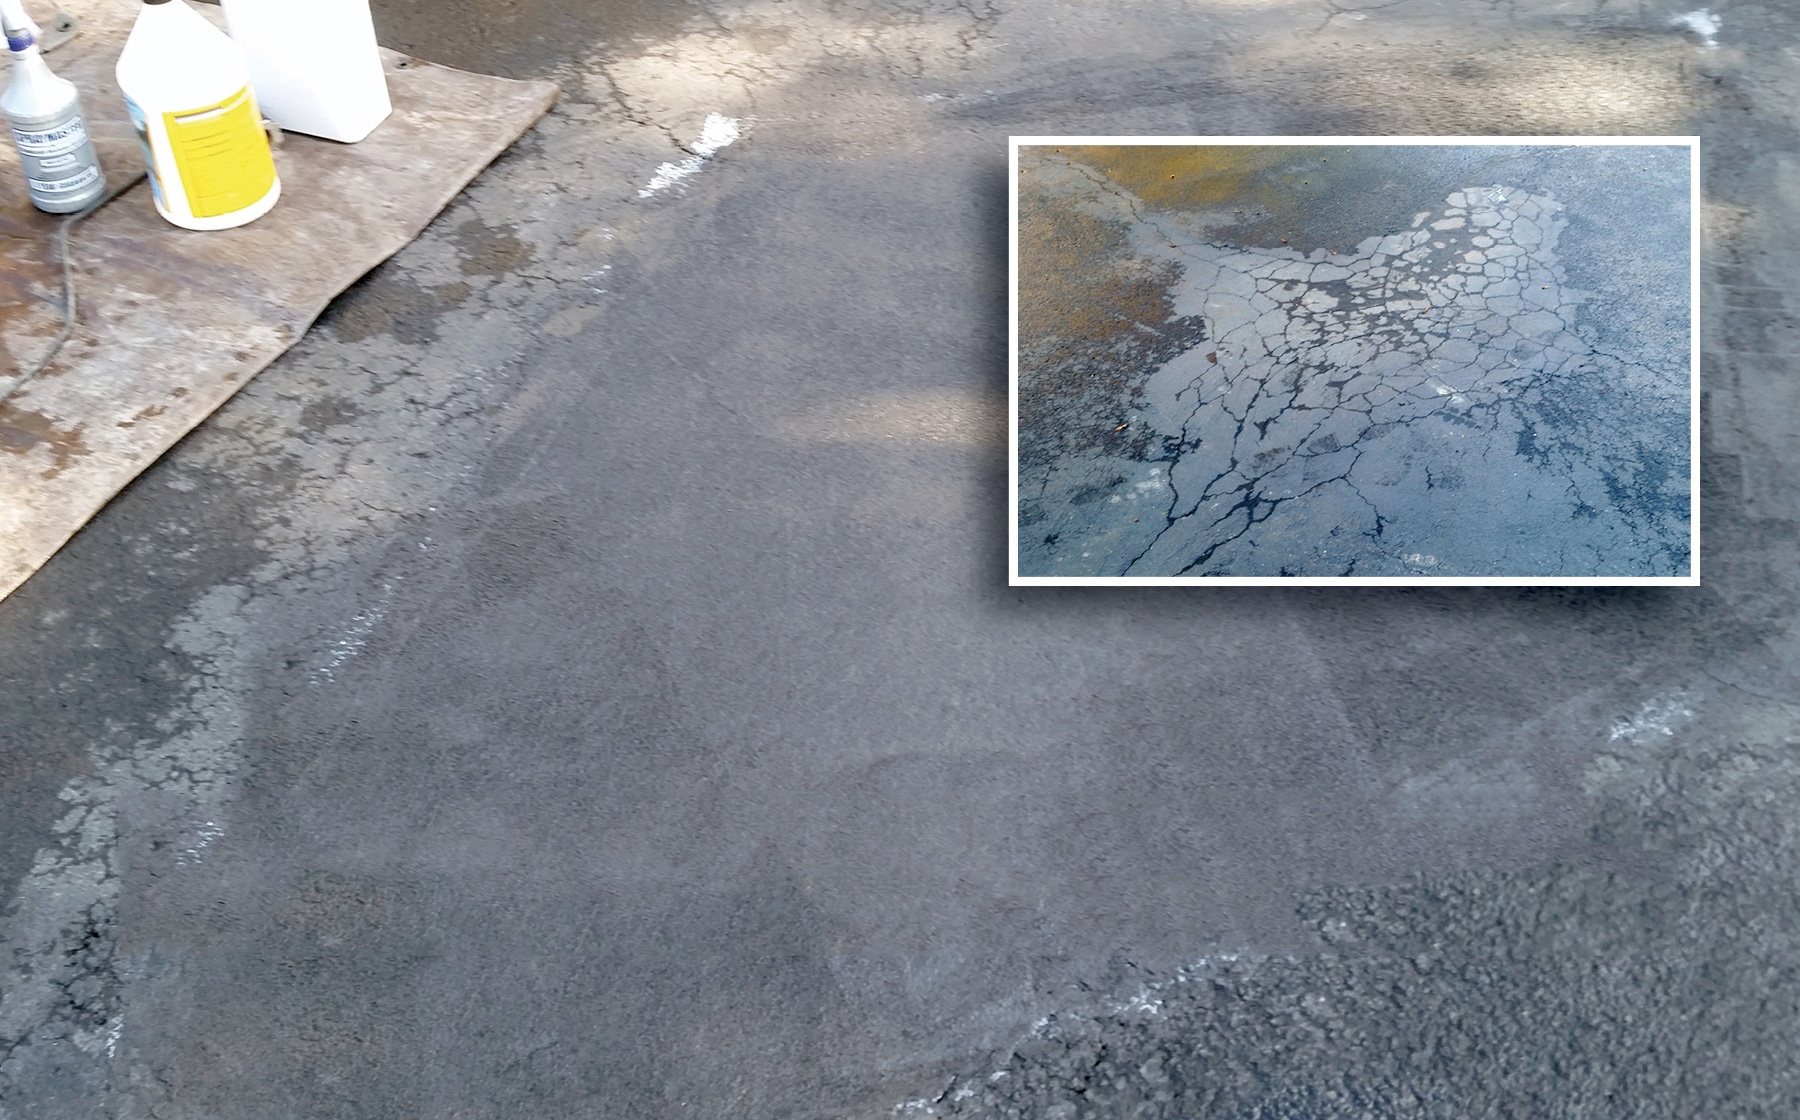 Asphalt Patch can be applied directly over 'alligator skin' asphalt without deconstruction!